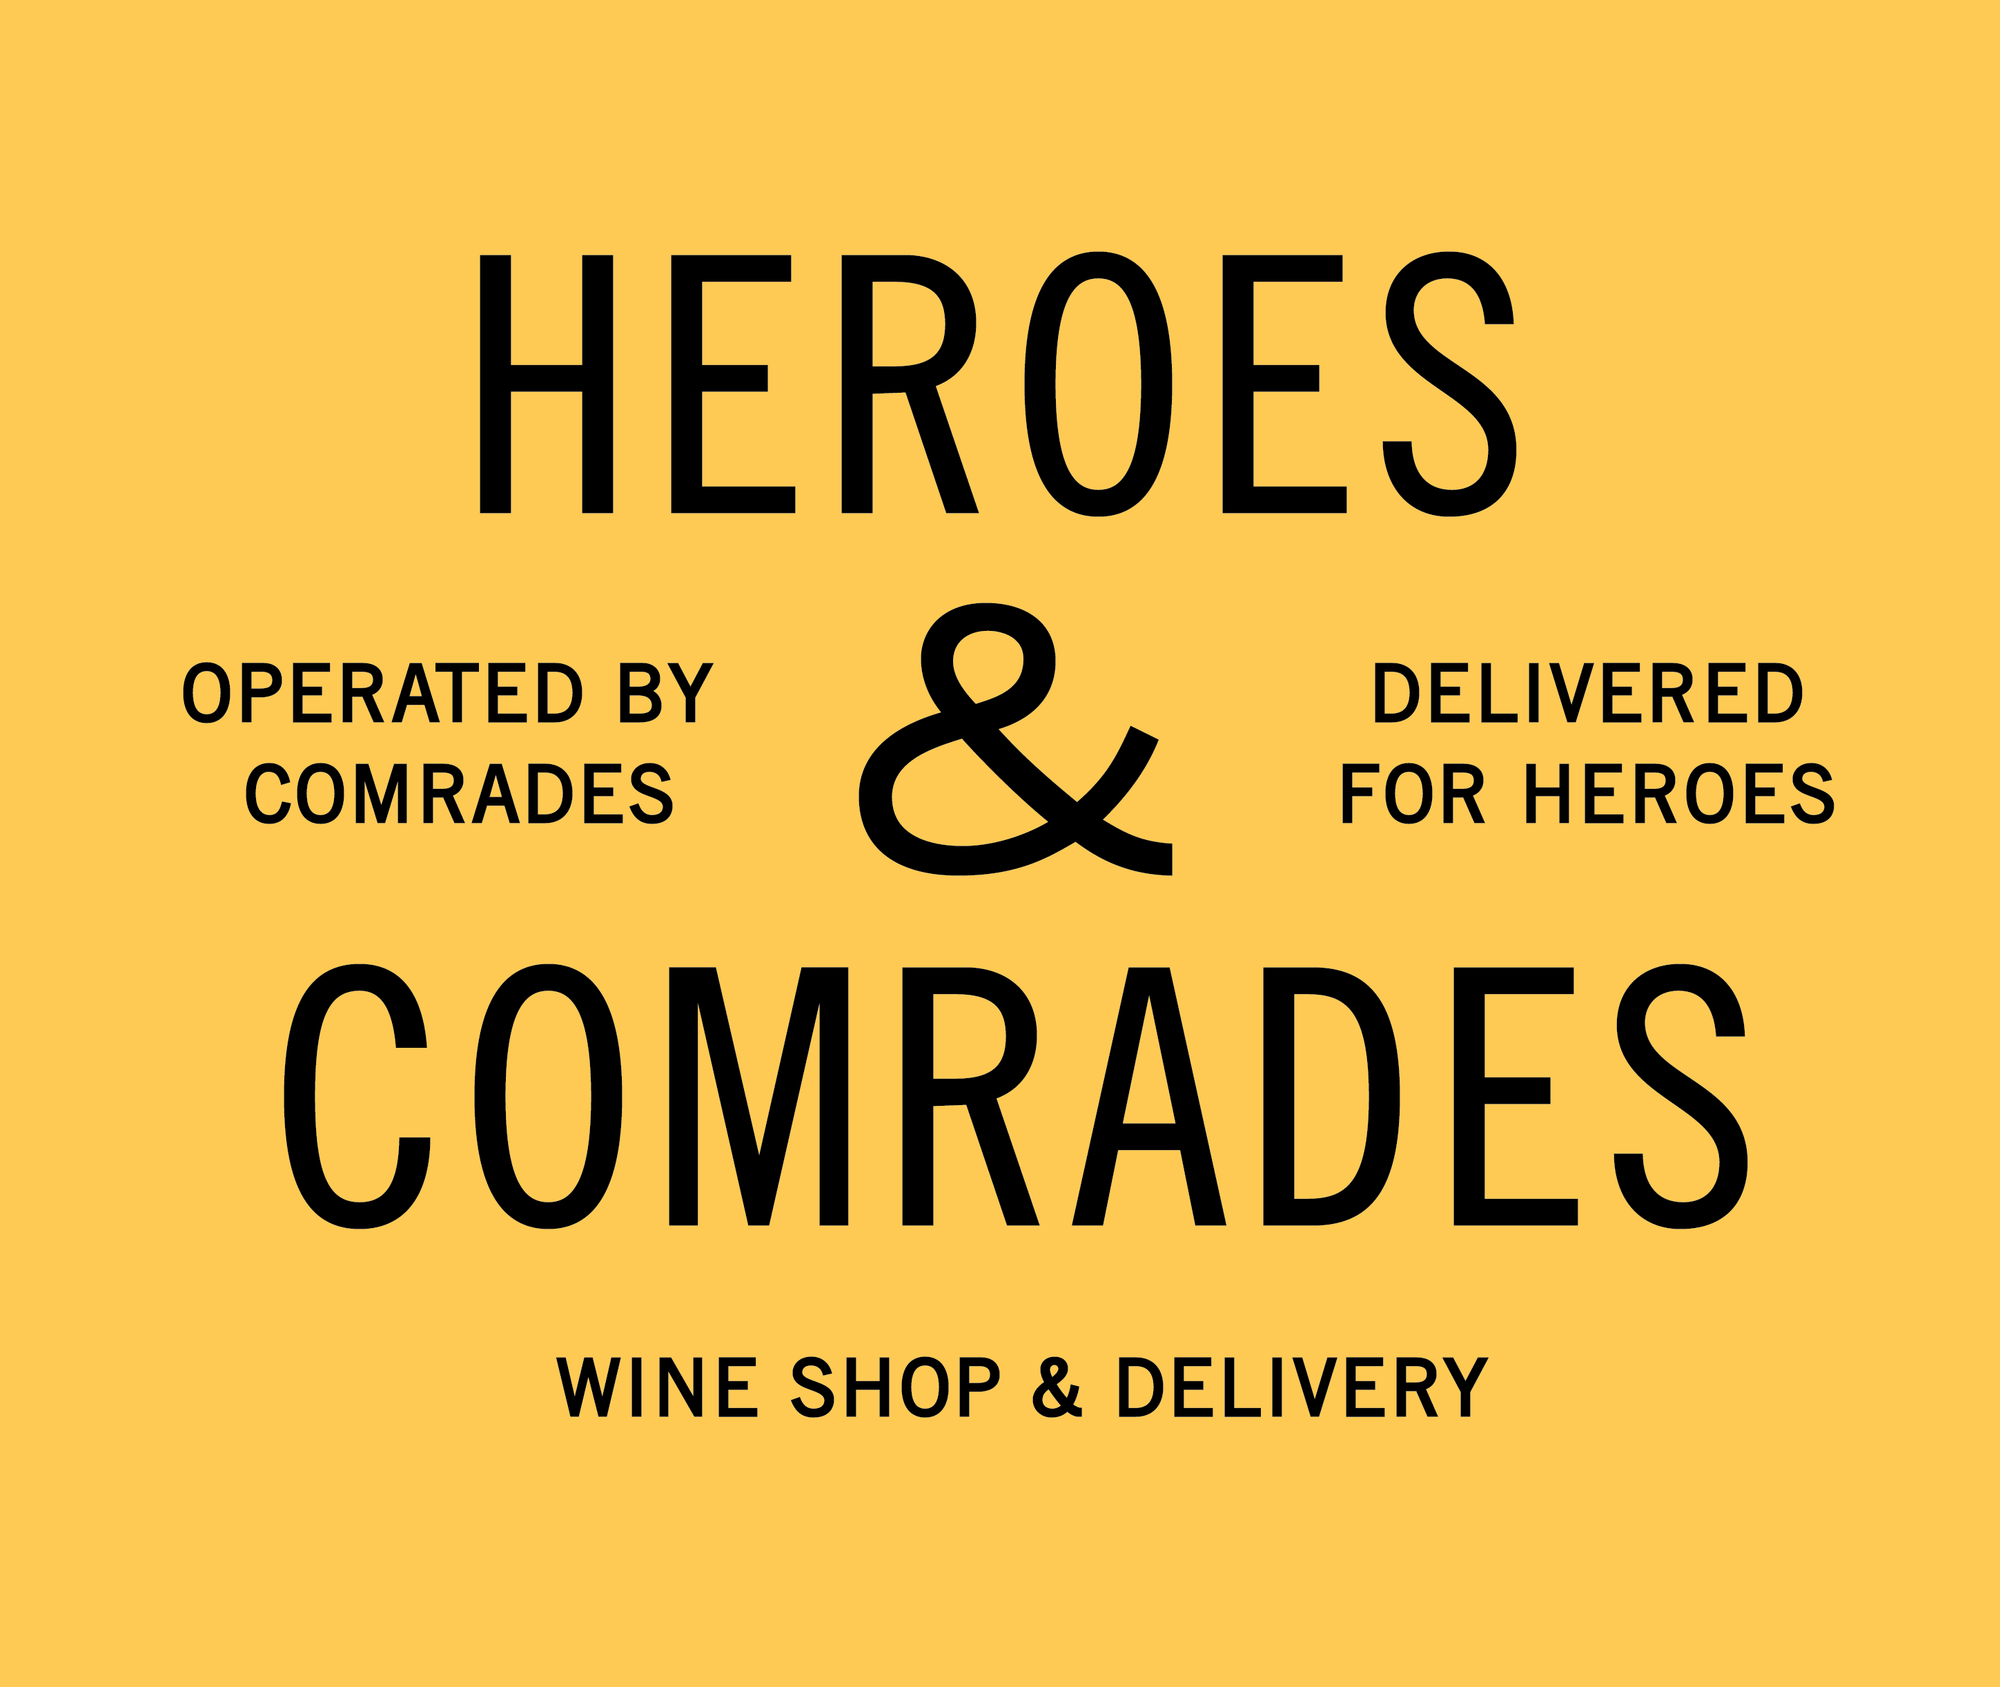 Online Store Voucher | Heroes & Comrades | Perth Delivery